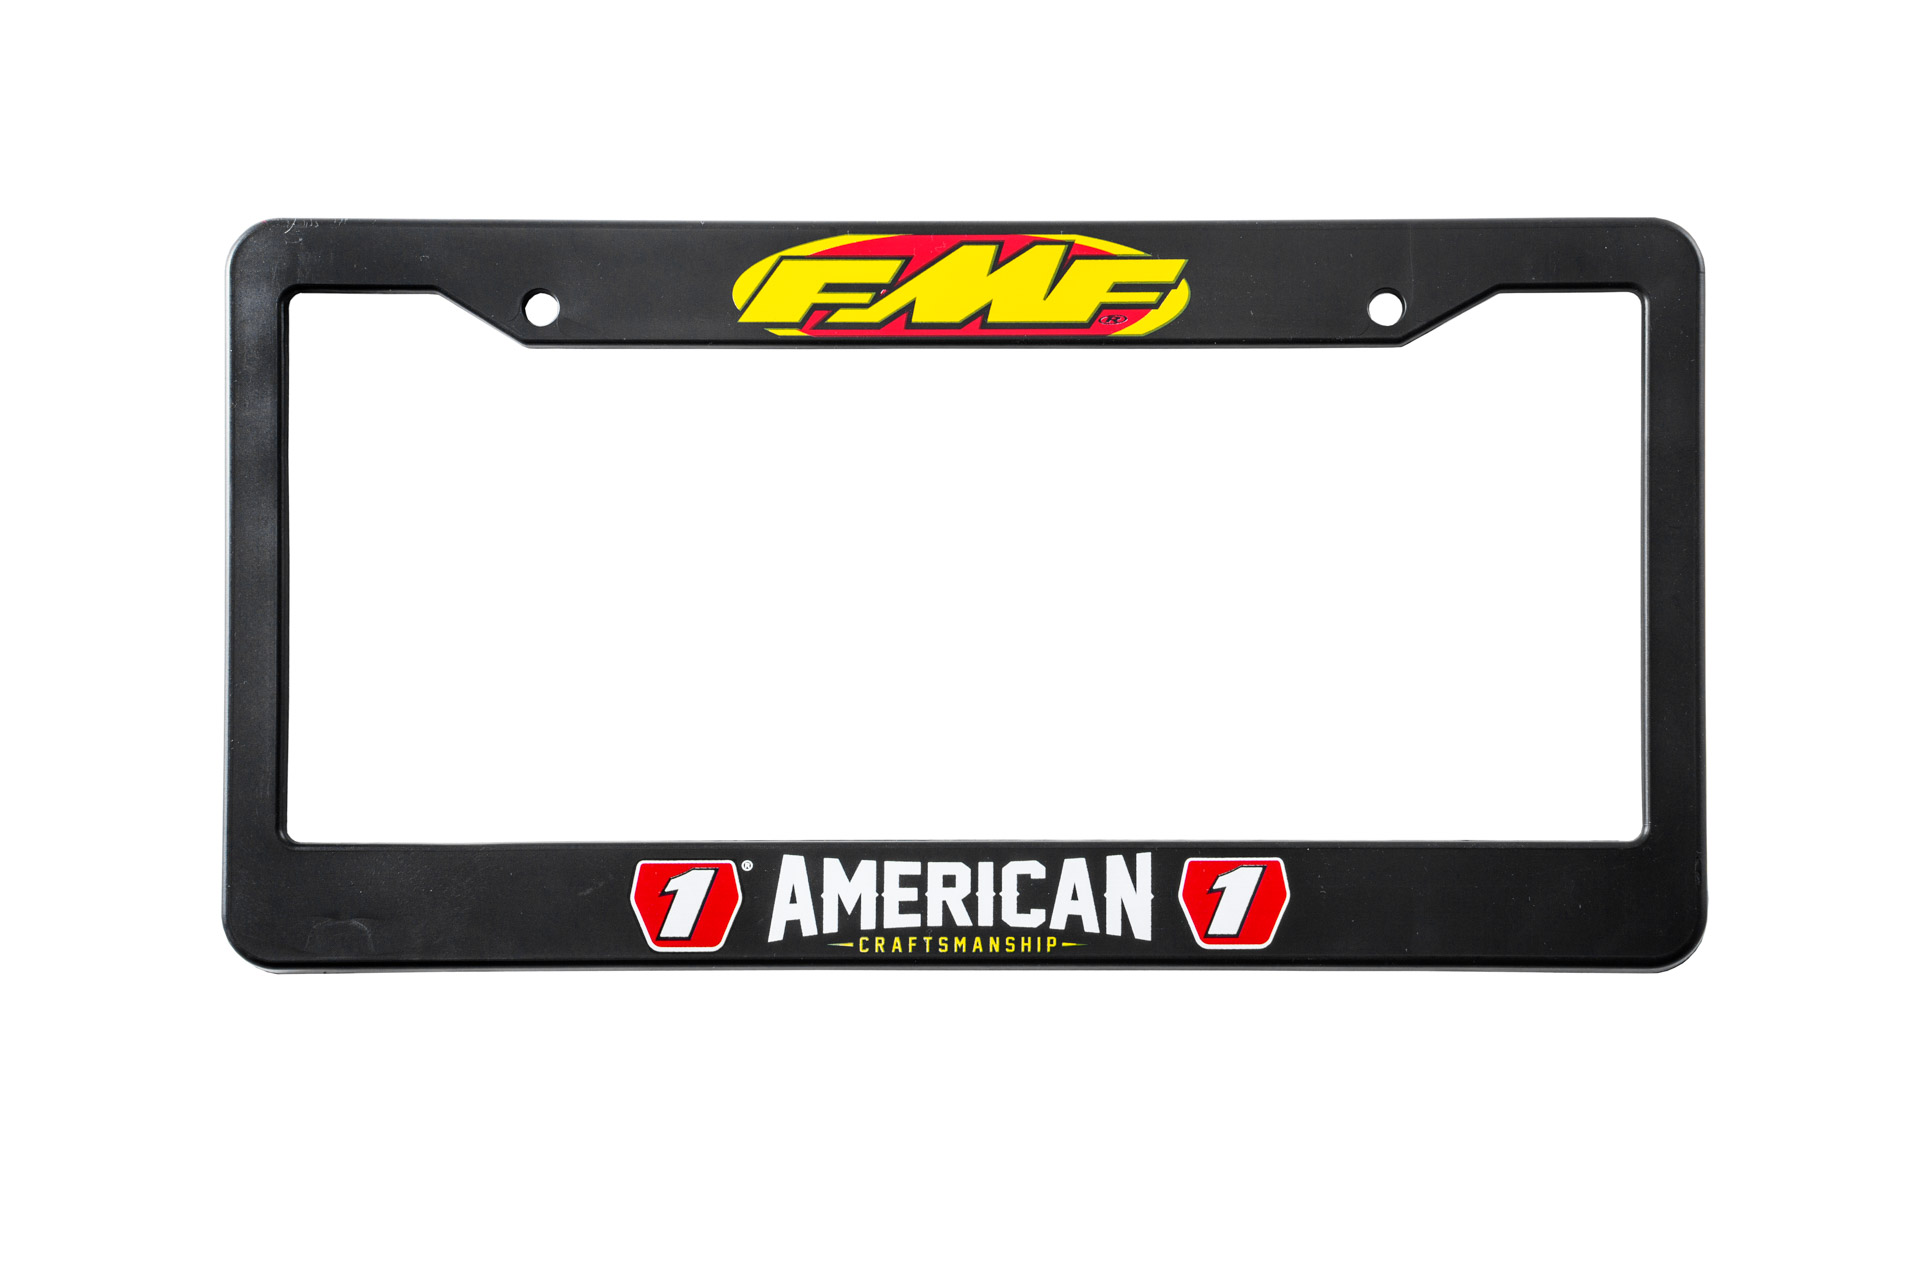 FMF AUTO LICENSE PLATE FRAME